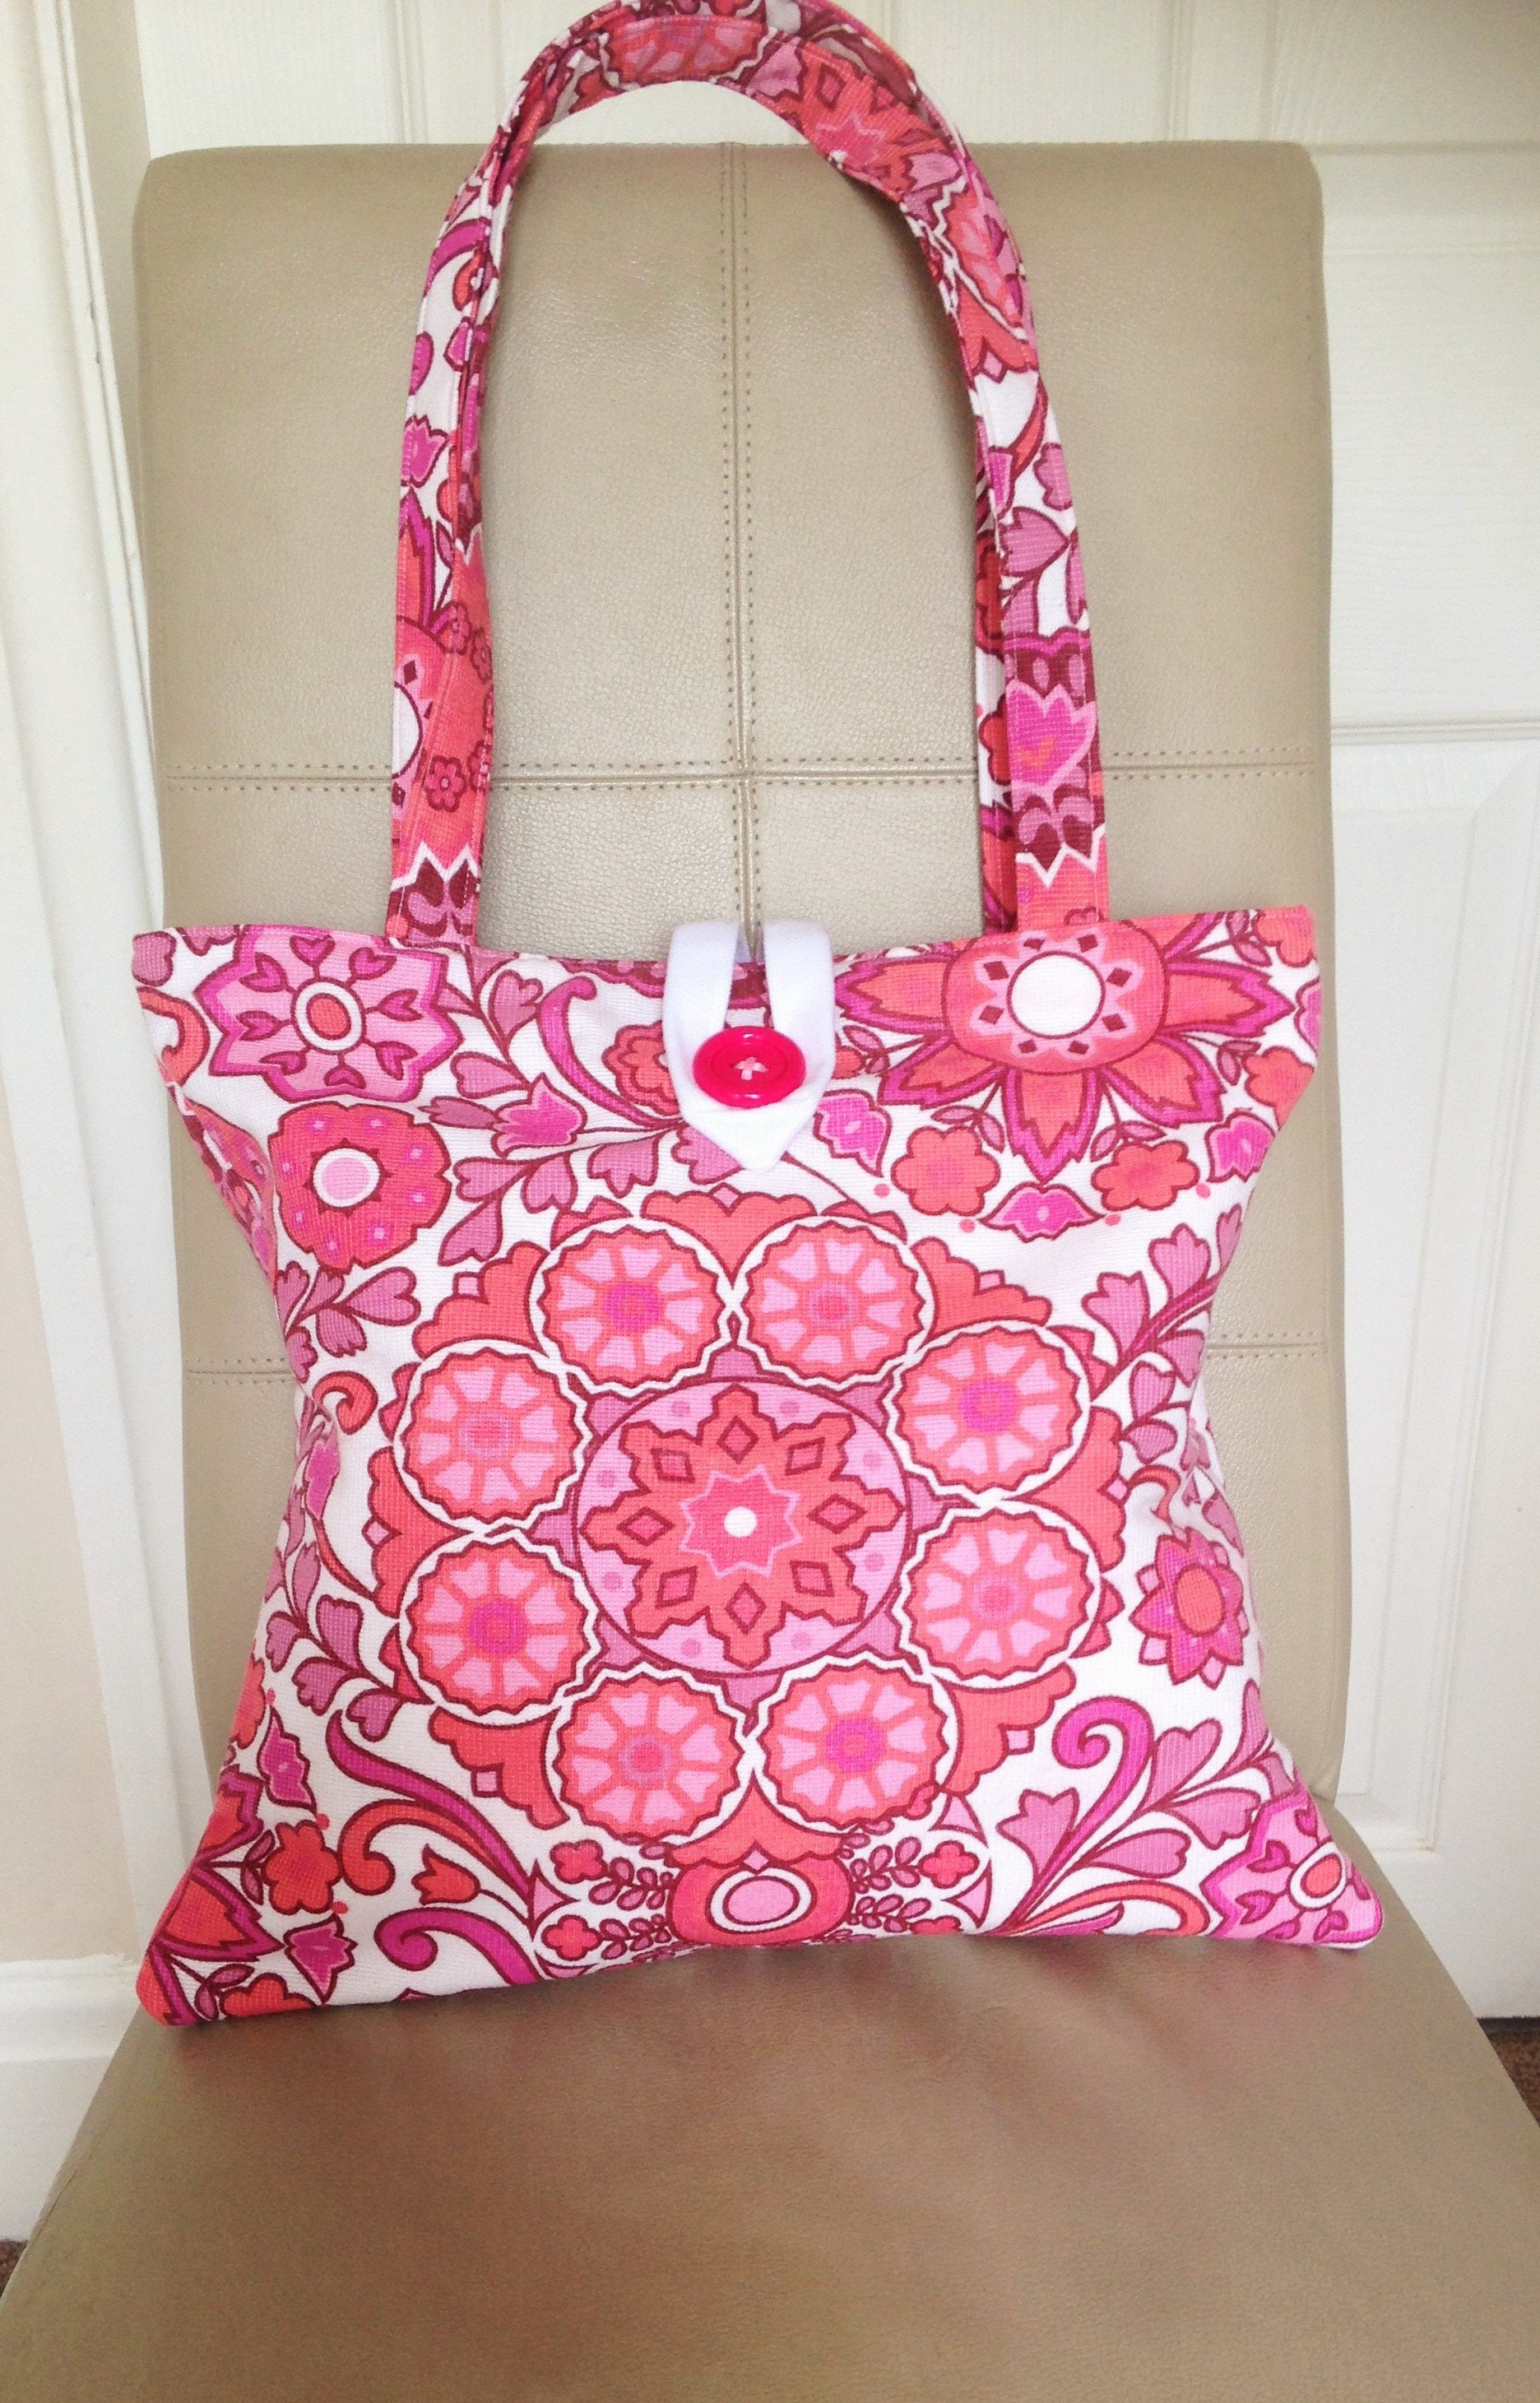 Vintage Fabric Tote Flower Power Handbag Flower Power Tote 70s Fabric Tote Bag 70s Fabric Handbag Pink Floral Tote Bag